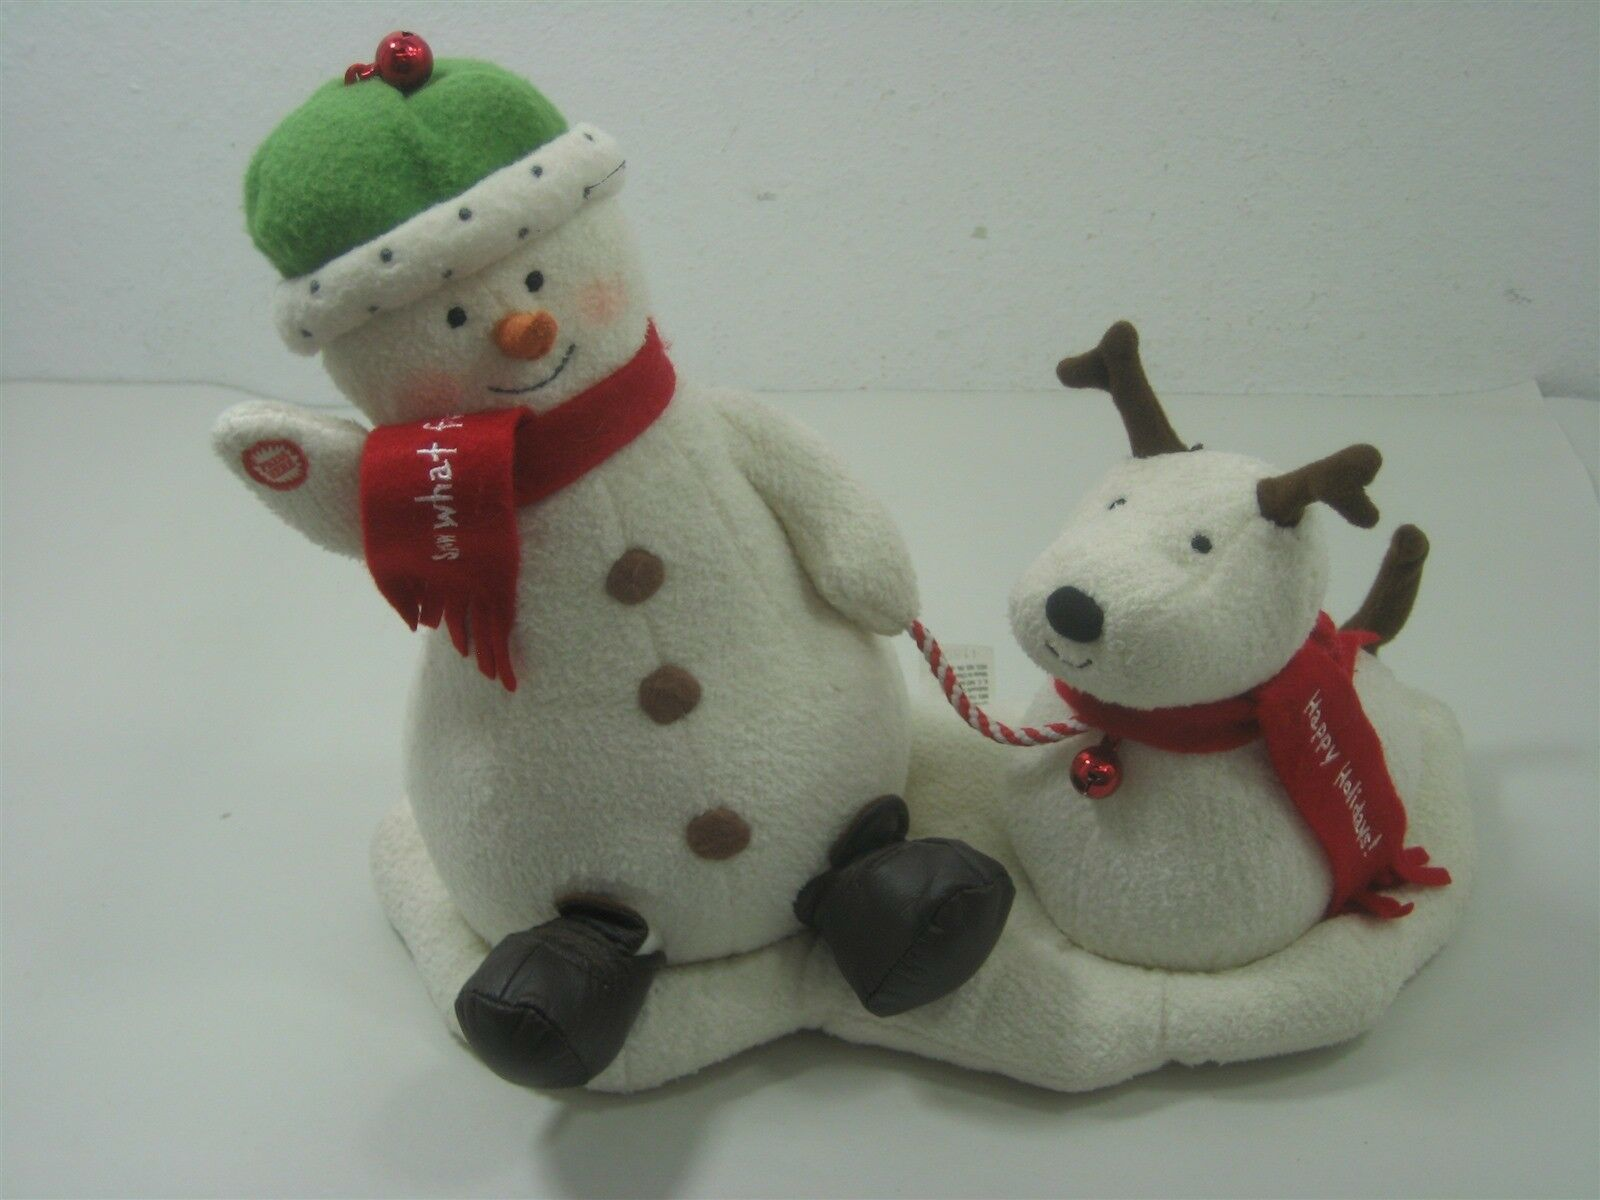 2004 Hallmark Jingle Pals Plush Snowman with Dog Animated Sings Jingle Bells